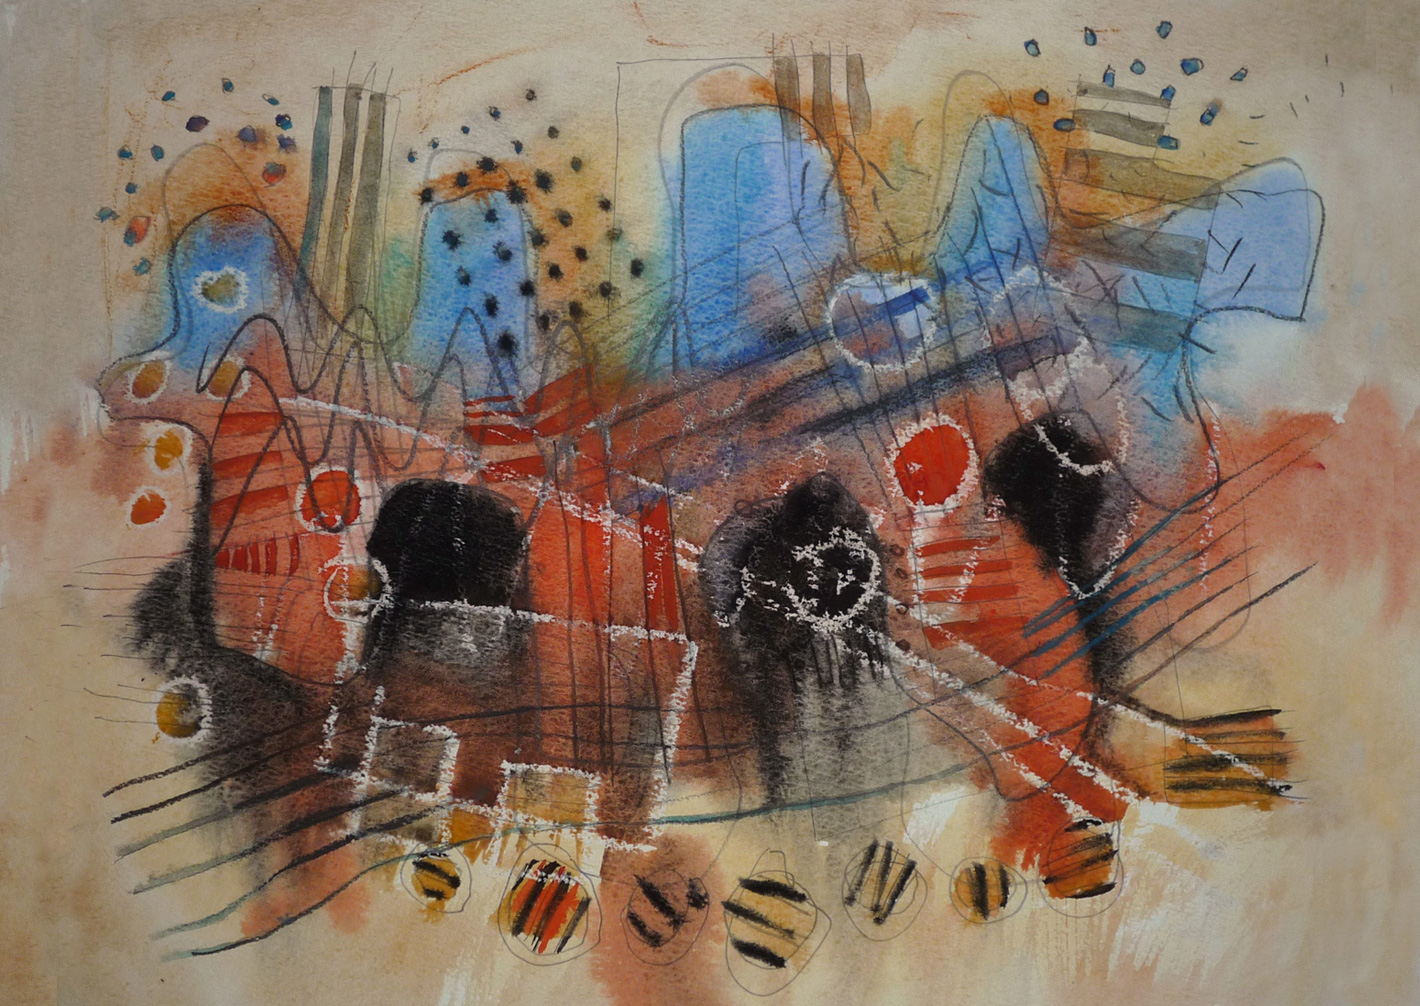 Rhythm-an-red-an-blue, watercolour, gouache, wax crayon , felt-pen and pencil on paper, A2 size